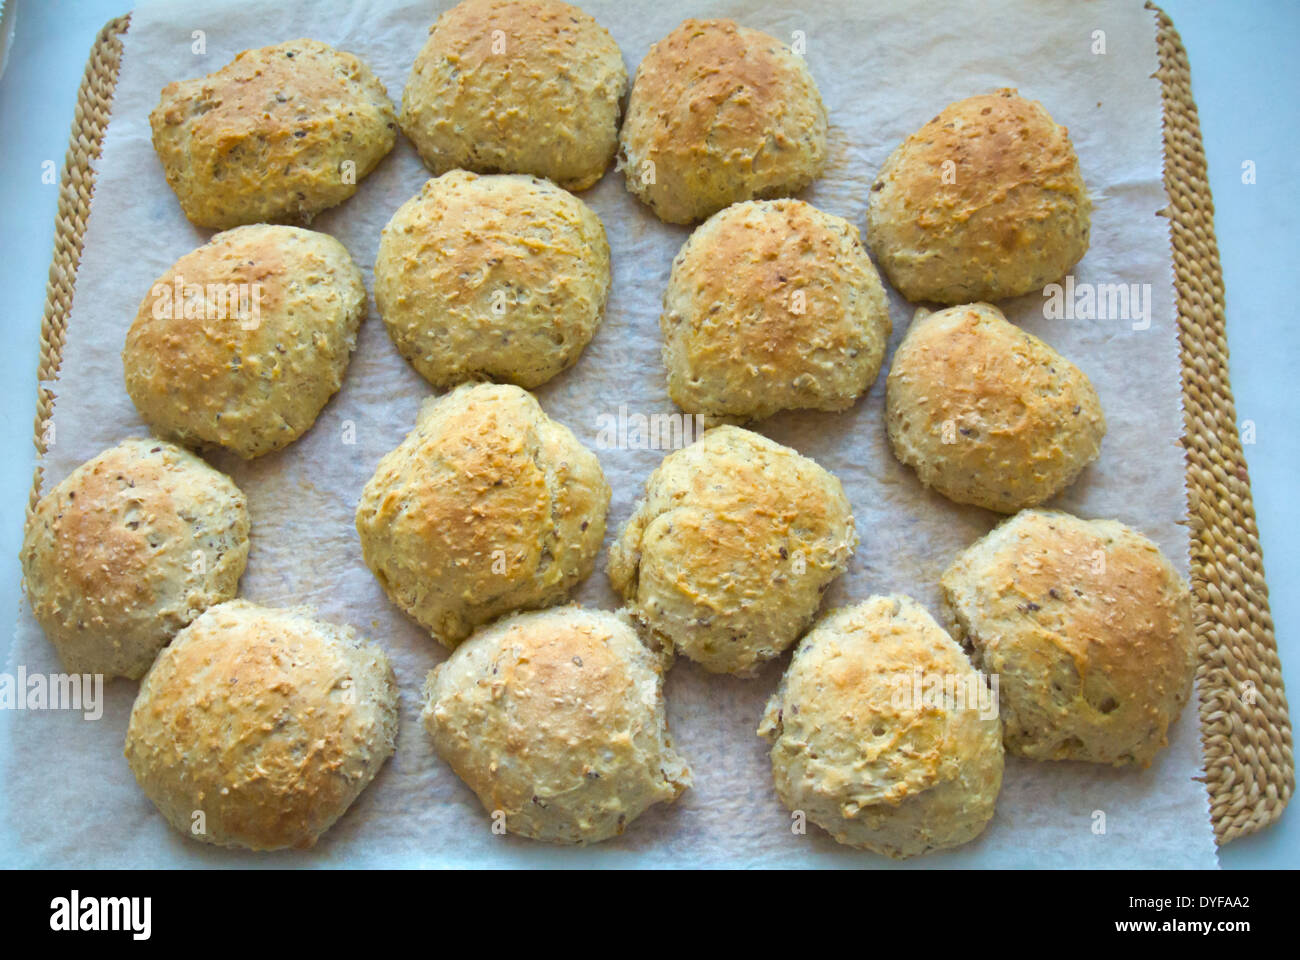 Fresh bread rolls, just out of the oven, Finland, Europe - Stock Image